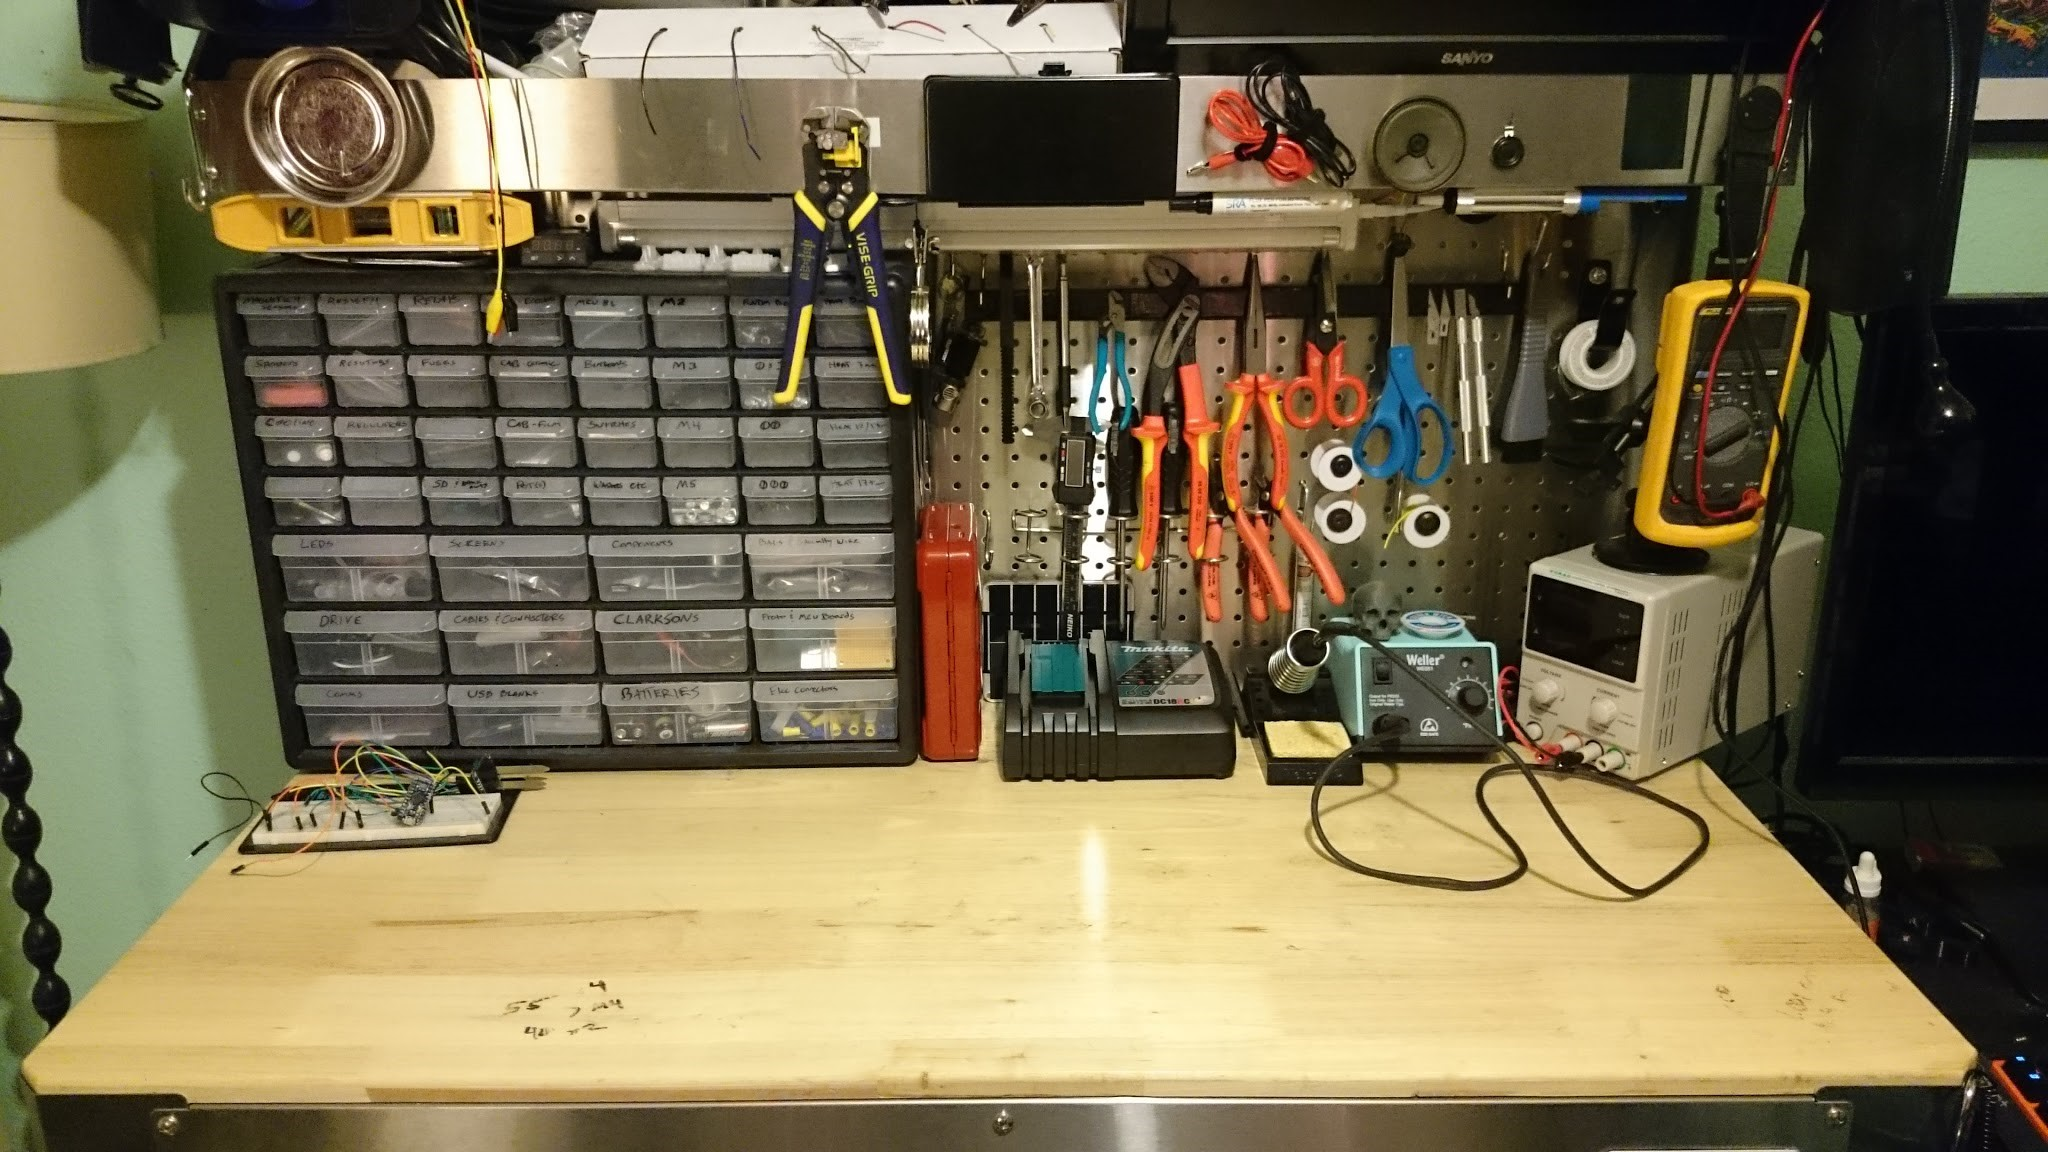 Erin Vaughn messy work bench hacks